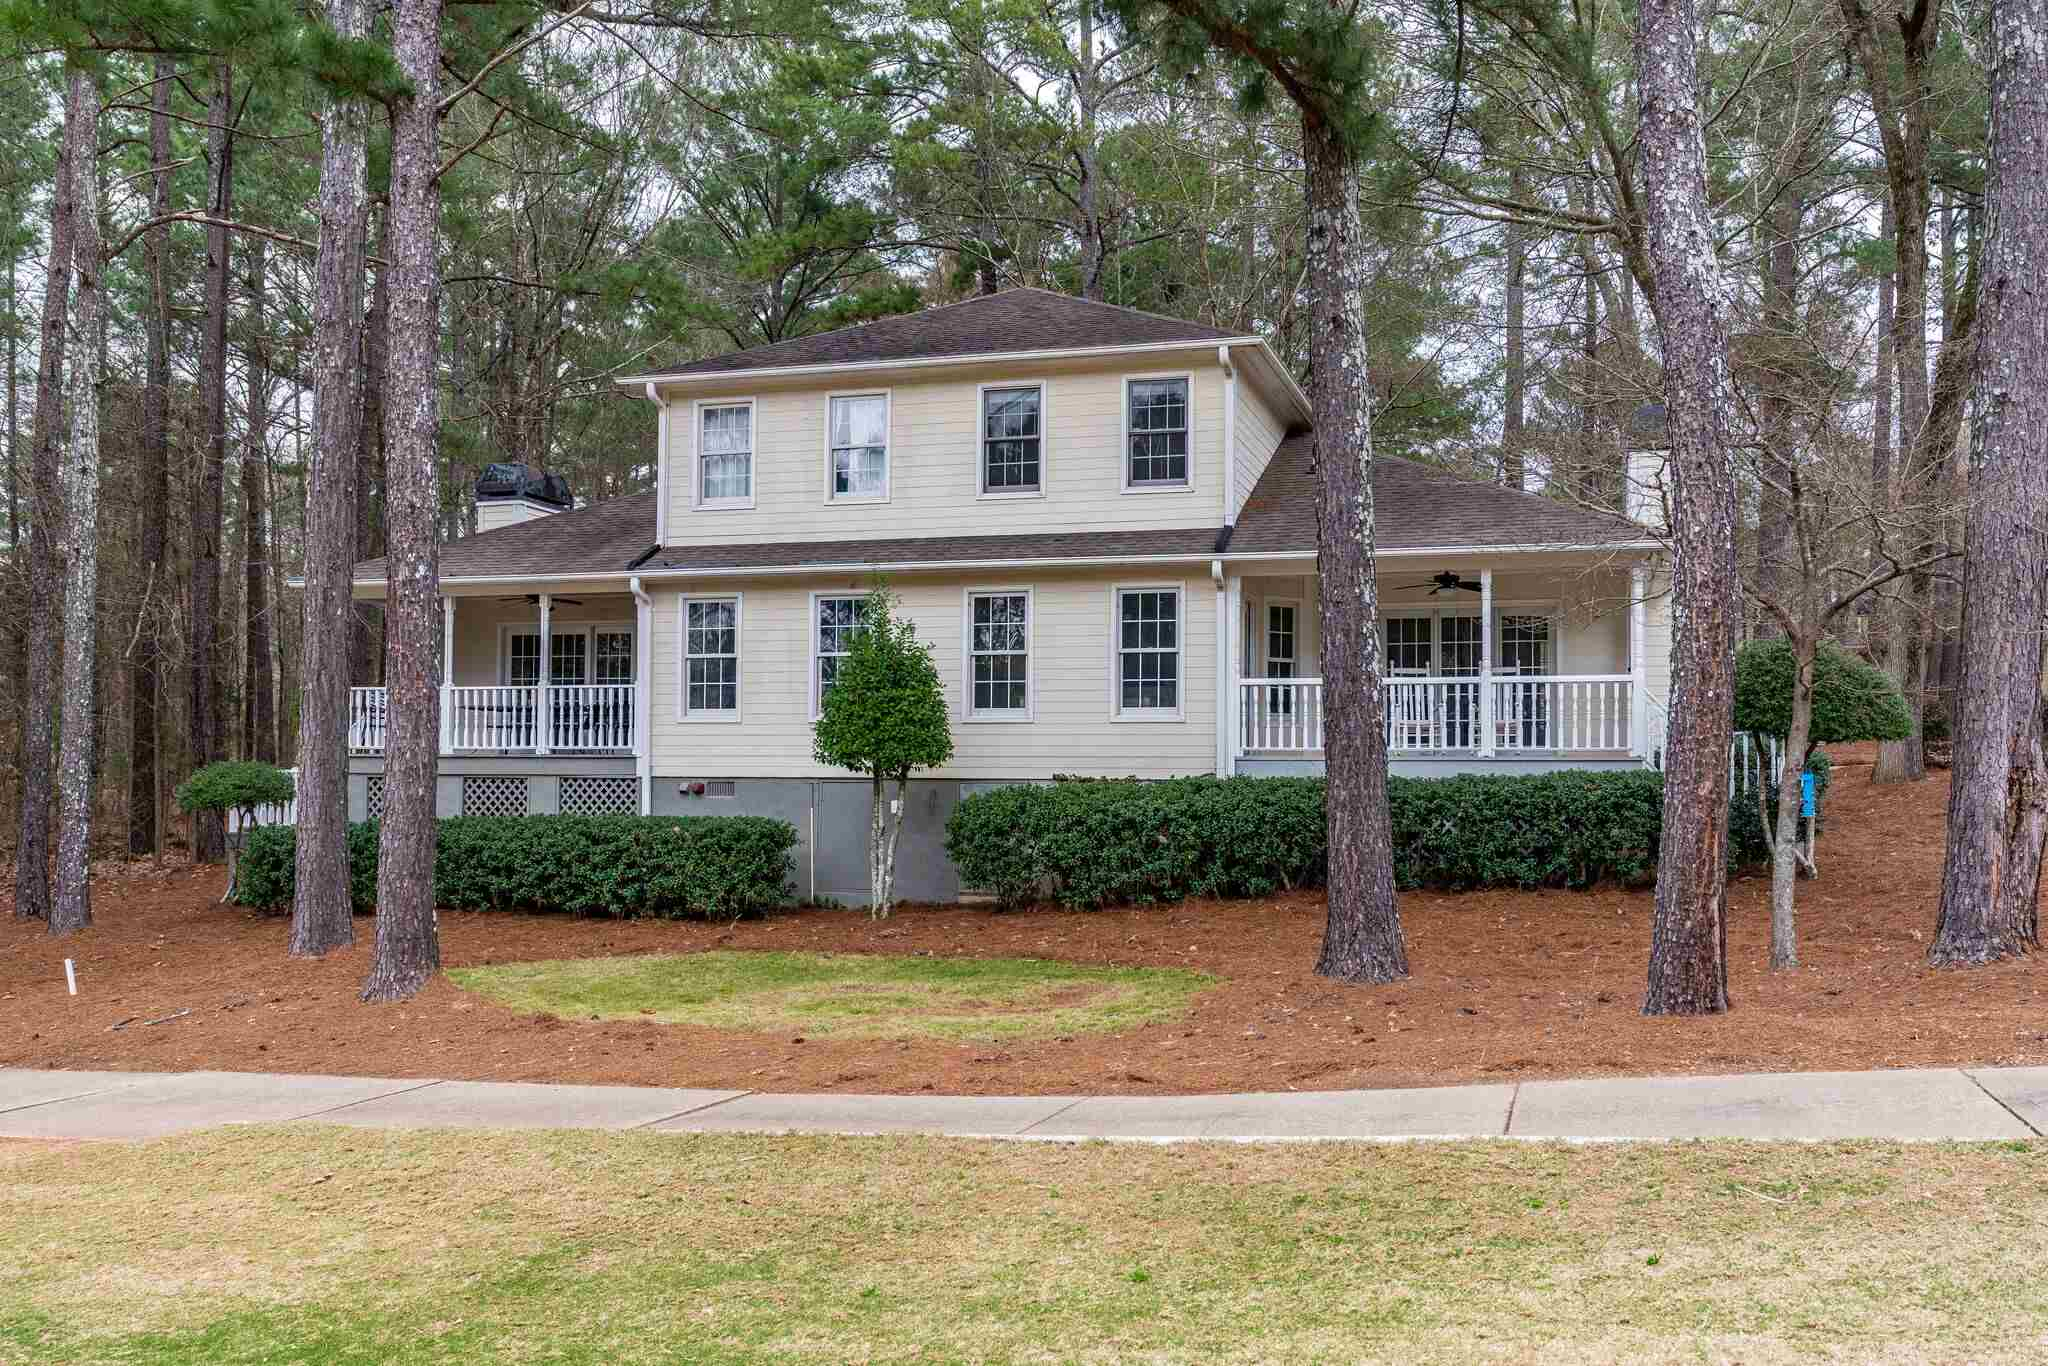 1030A ROSEMONT WALK, Lake Oconee Reynolds Landing in Greene County, GA 30642 Home for Sale